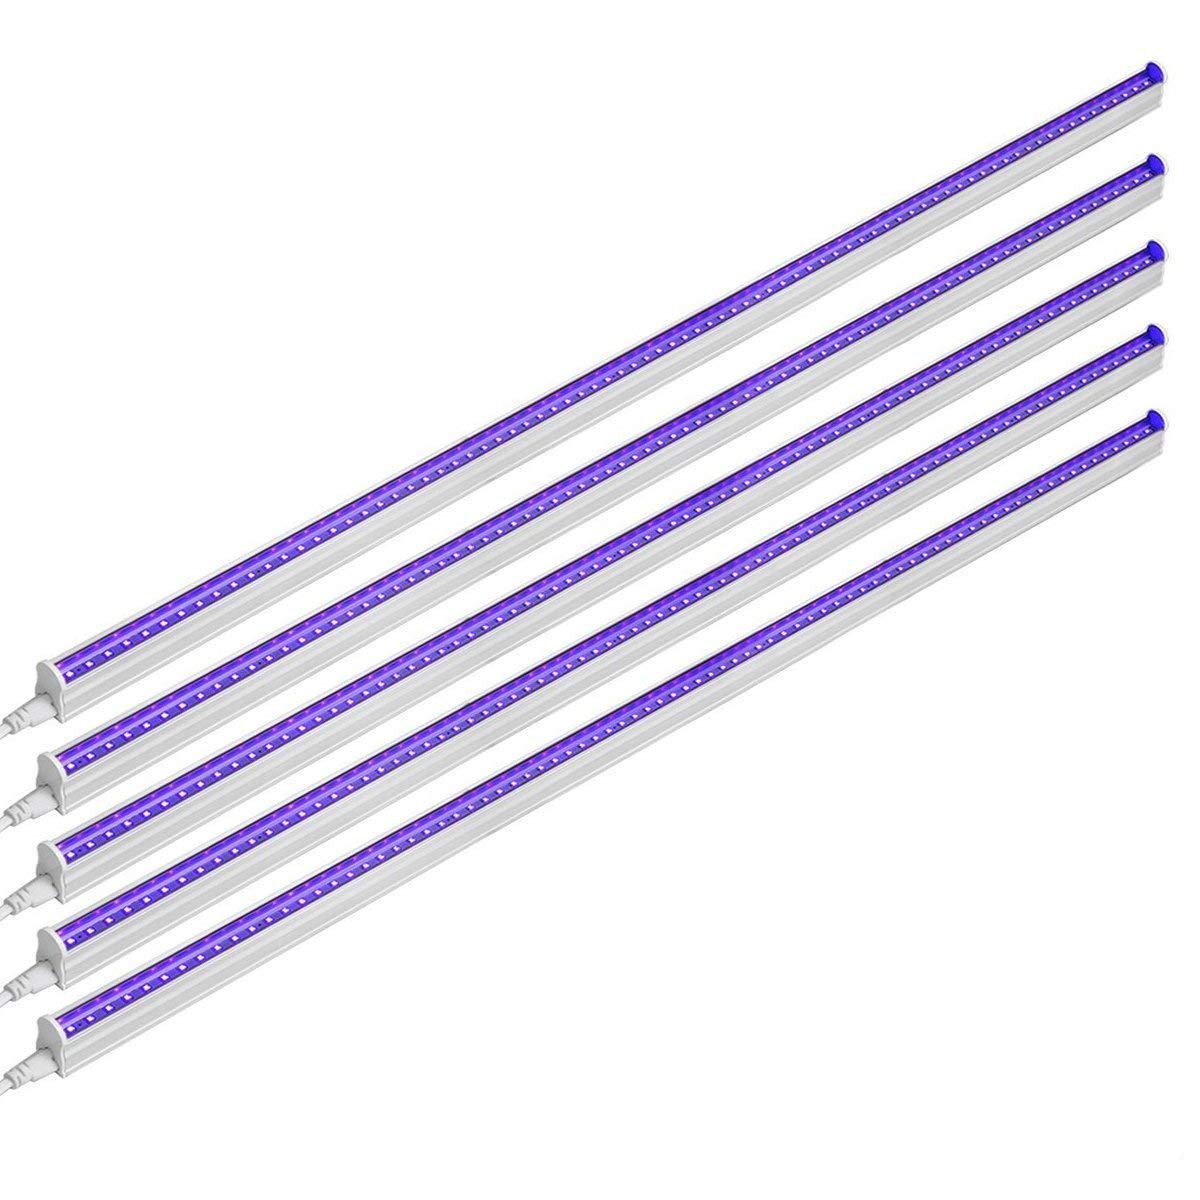 LED Fantasy UV LED Blacklight Bar 20w 4ft T5 Integrated Bulb Black Light Fixture for Blacklight Poster and Party Fun Atmosphere with Built-in ON/Off Switch